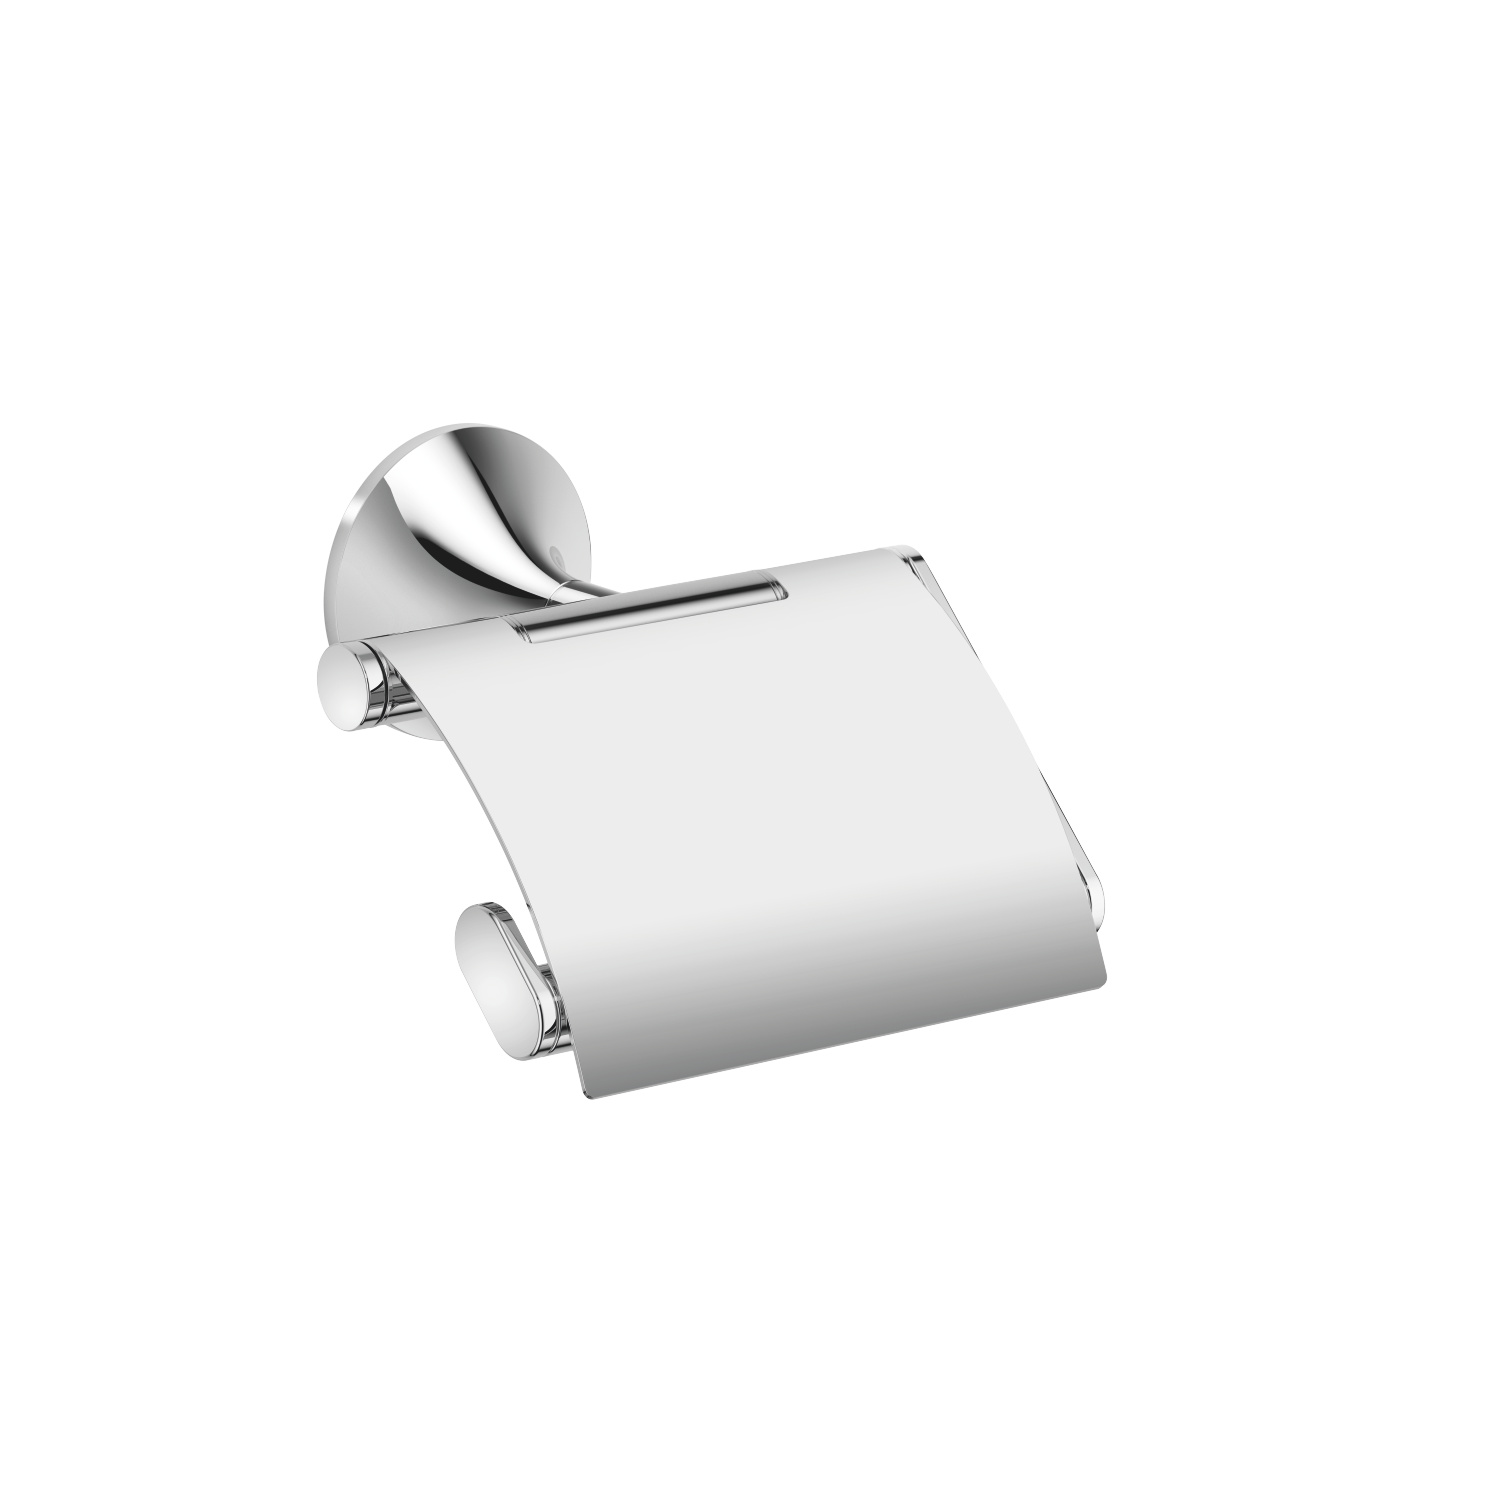 Tissue holder with cover - polished chrome